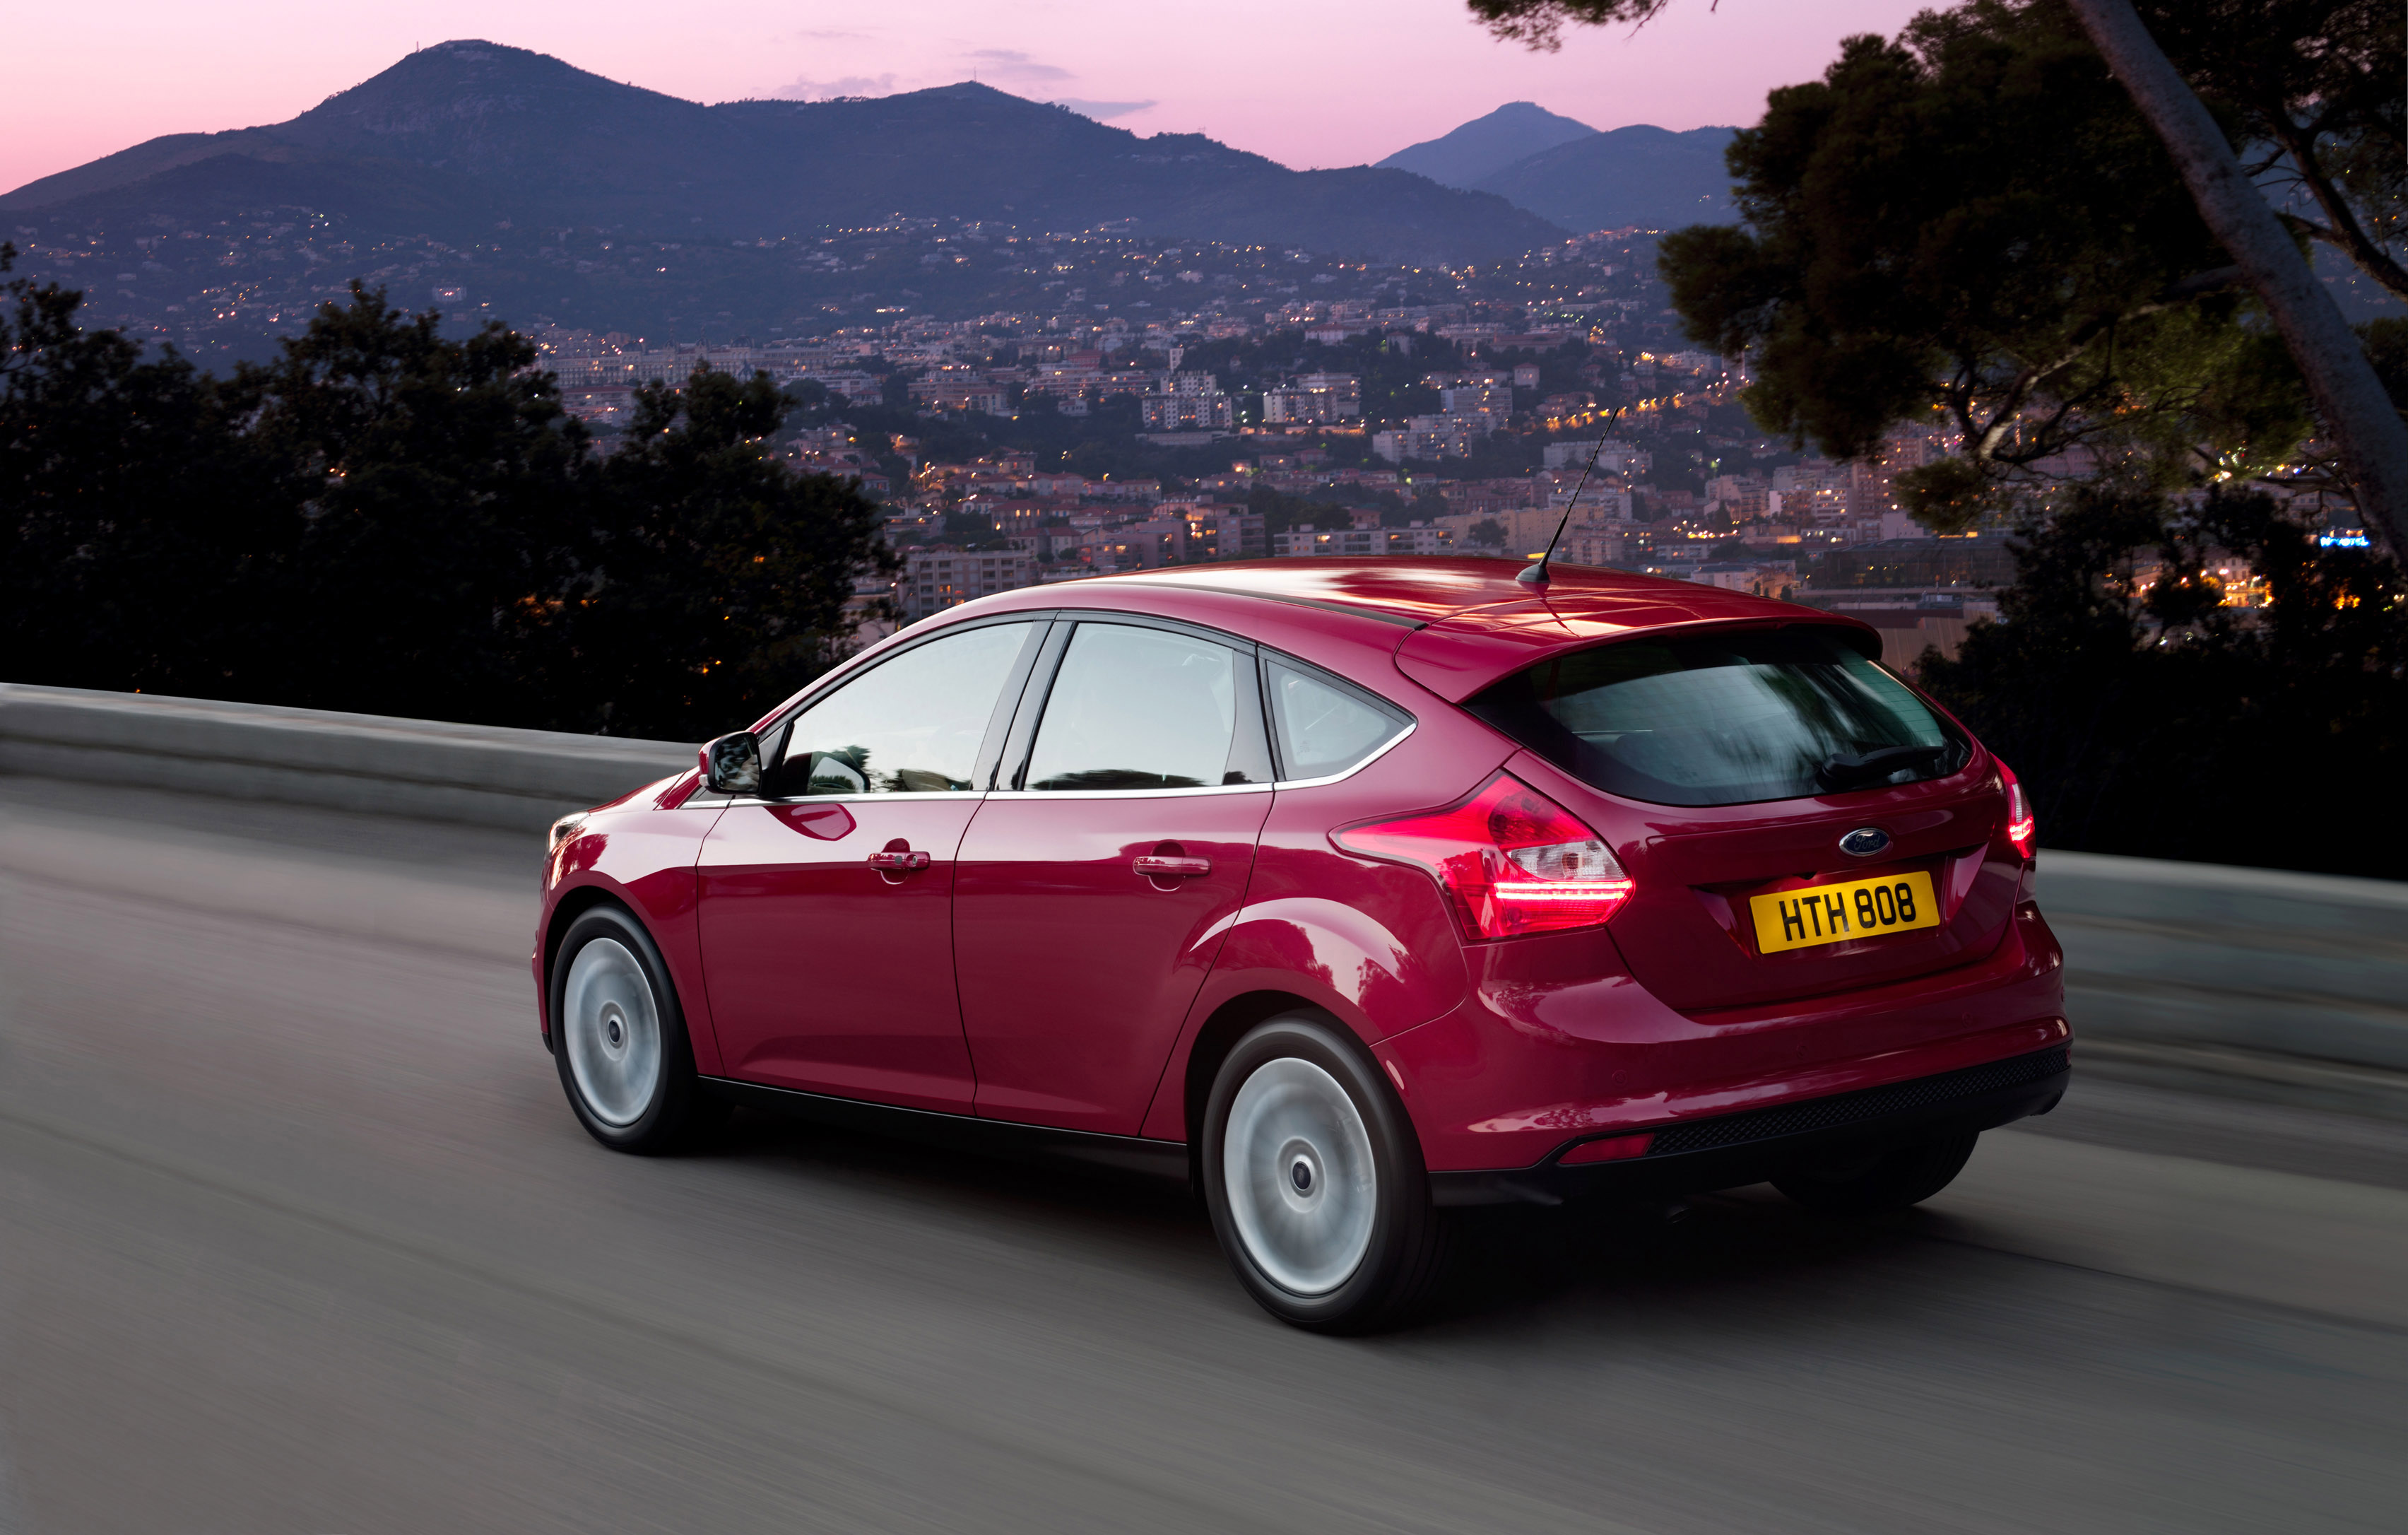 2012 ford focus hatchback iii pictures information and specs auto. Black Bedroom Furniture Sets. Home Design Ideas